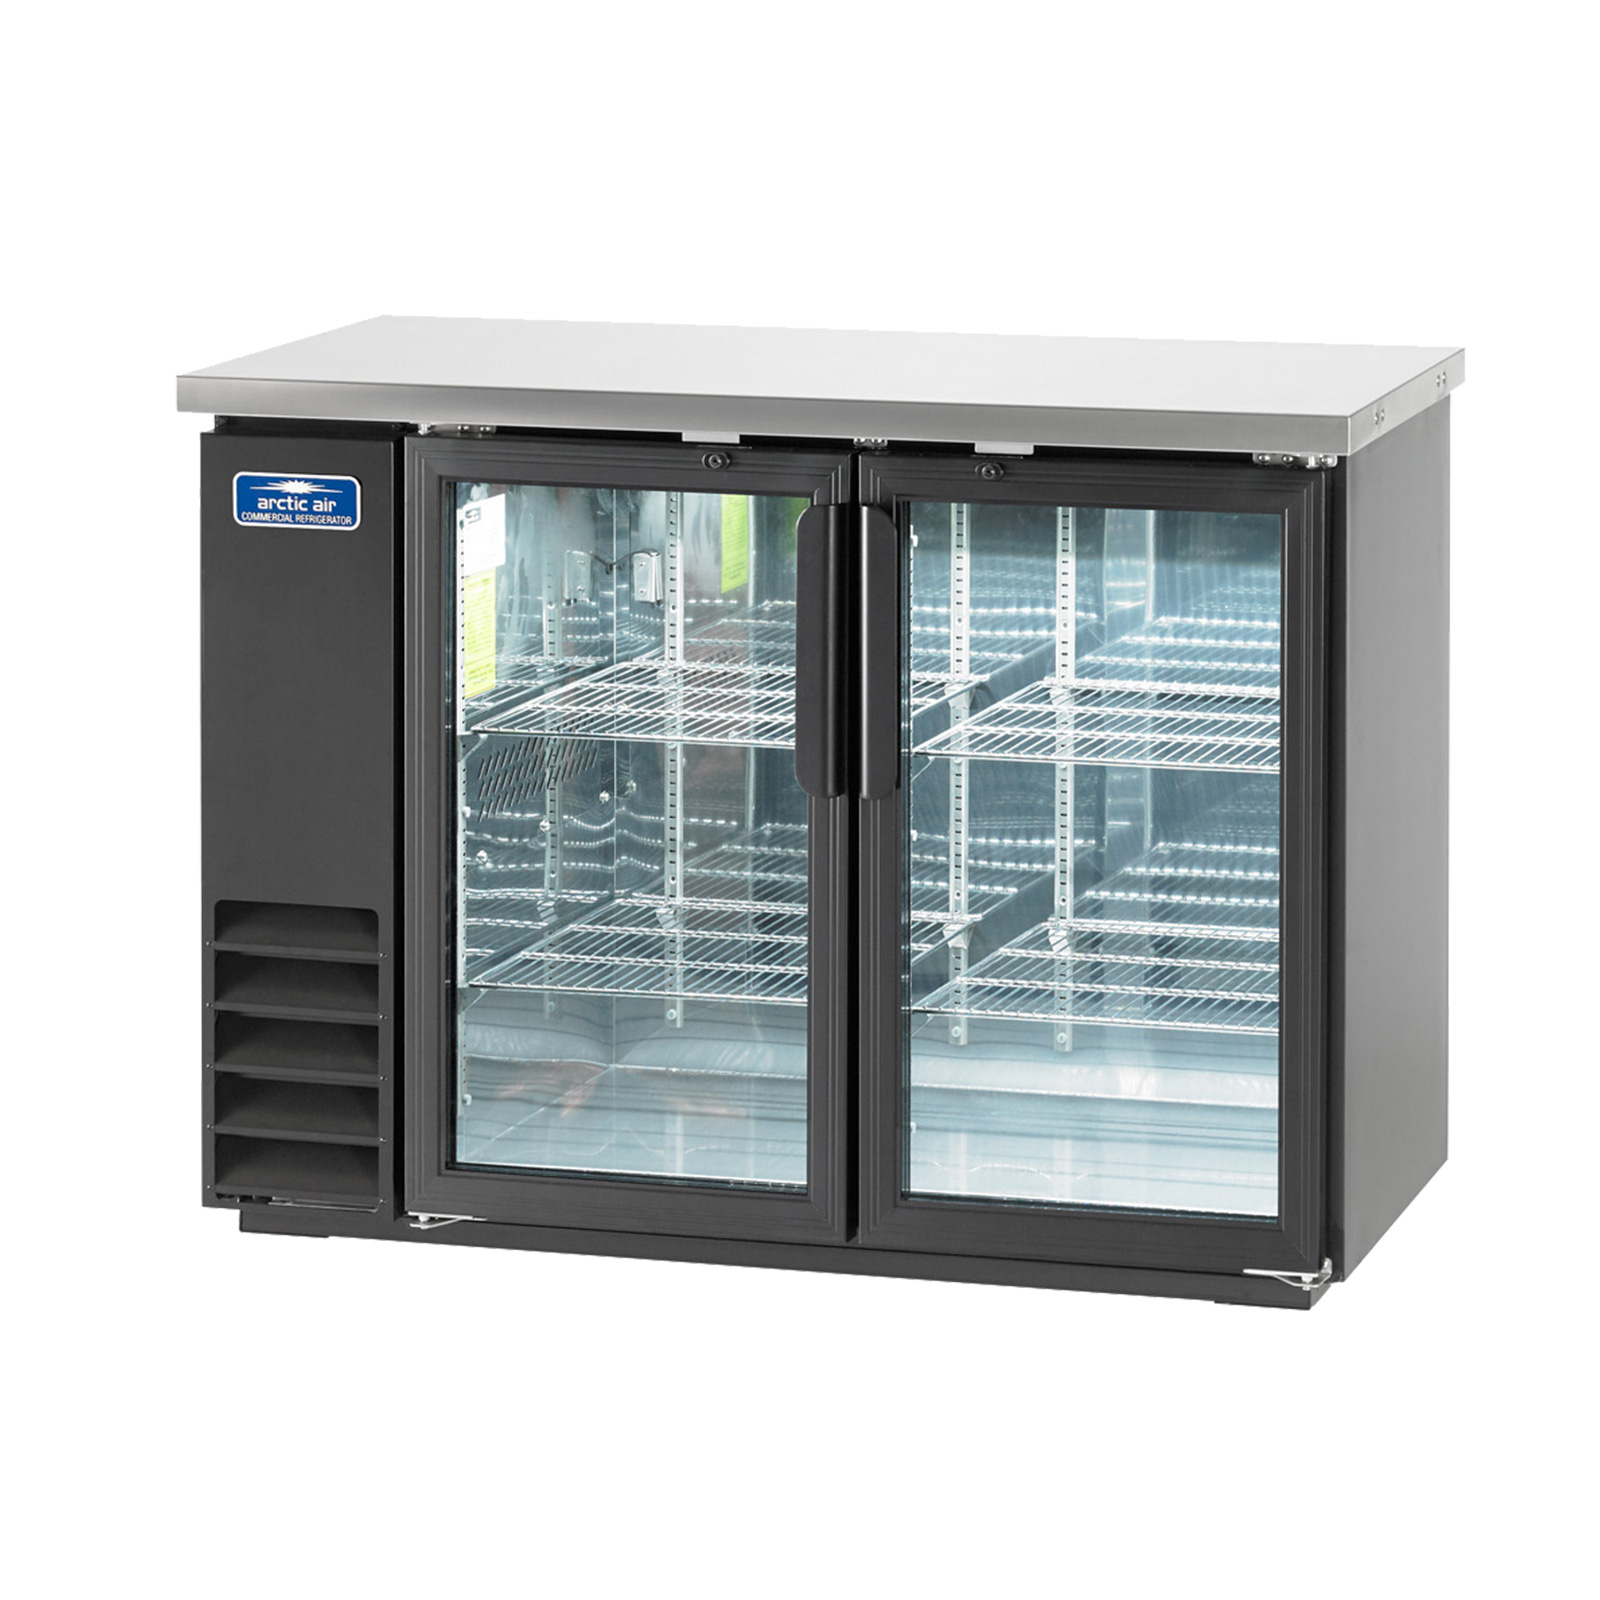 Arctic Air ABB48G back bar cabinet, refrigerated